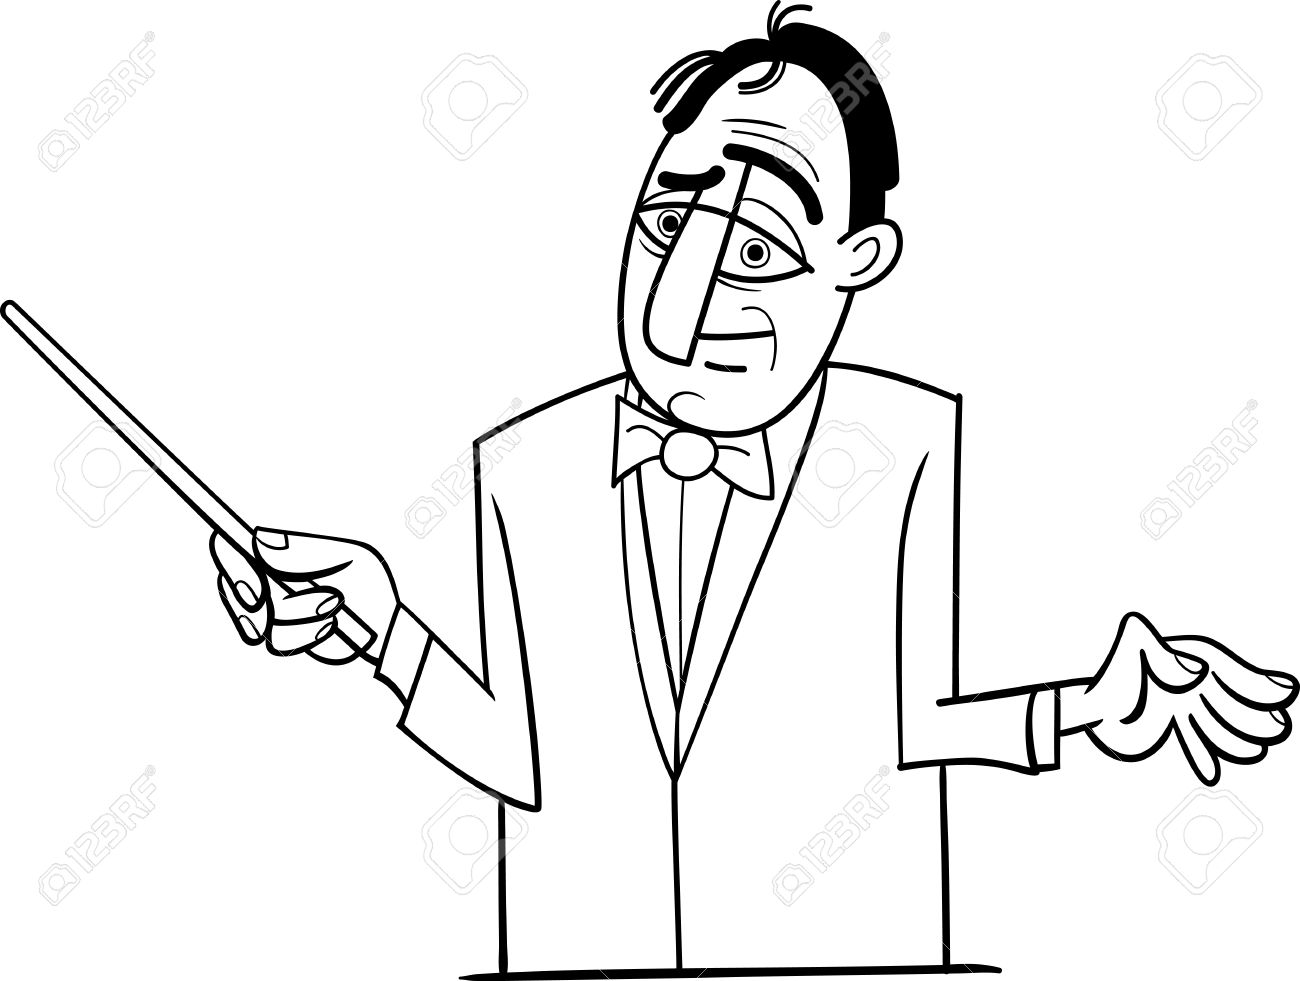 1300x981 Black And White Cartoon Illustration Of Orchestra Conductor Funny